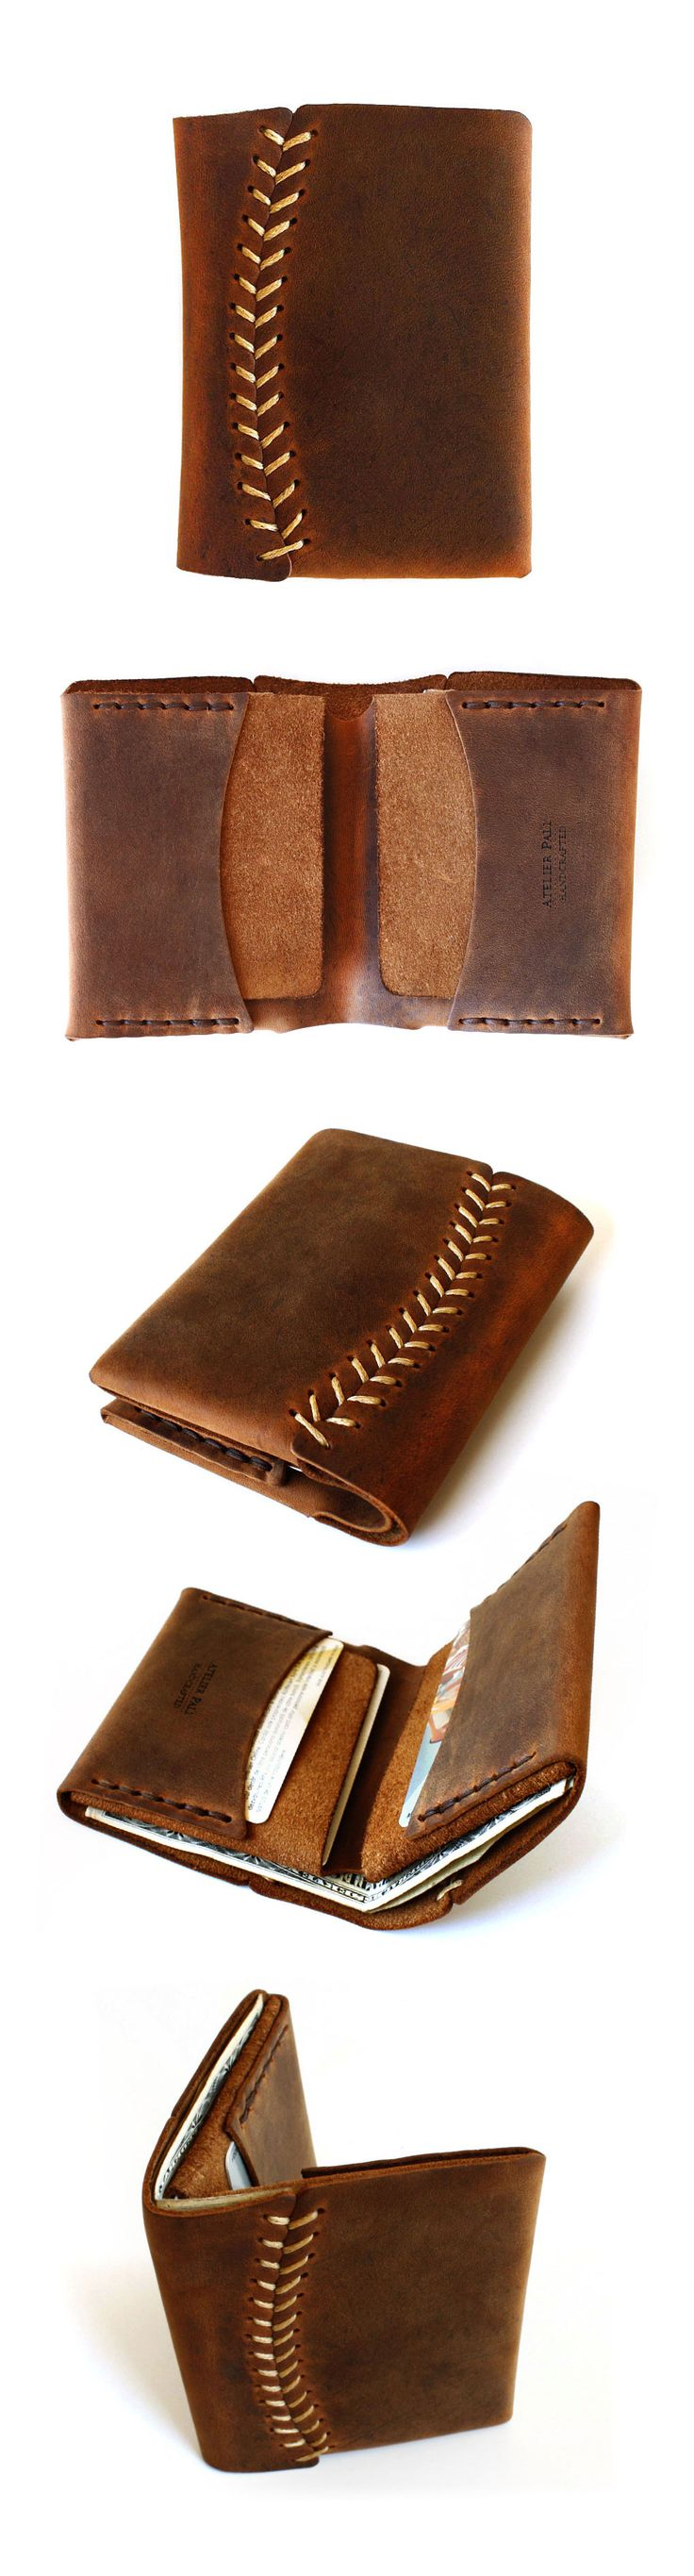 Billetera Hombre - Baseball stitch leather wallet by AtelierPALL.com